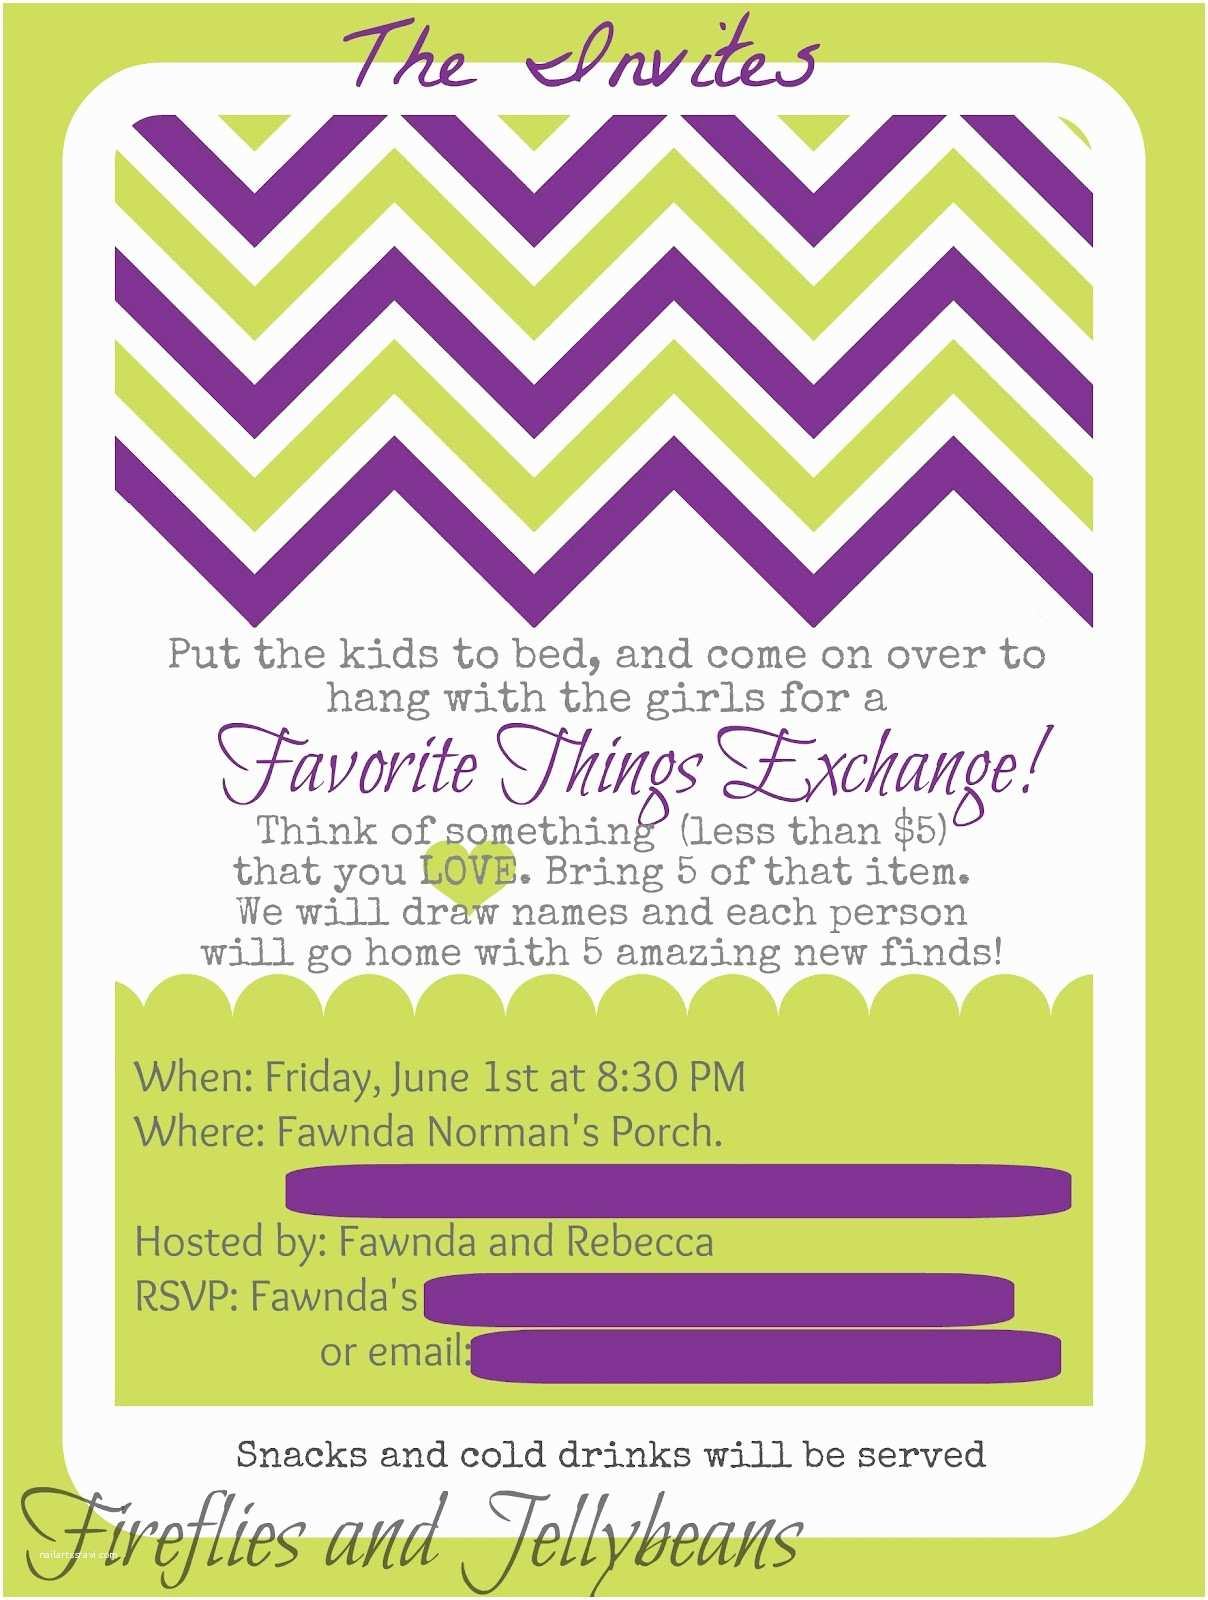 Favorite Things Party Invitation Fireflies and Jellybeans Favorite Things Party